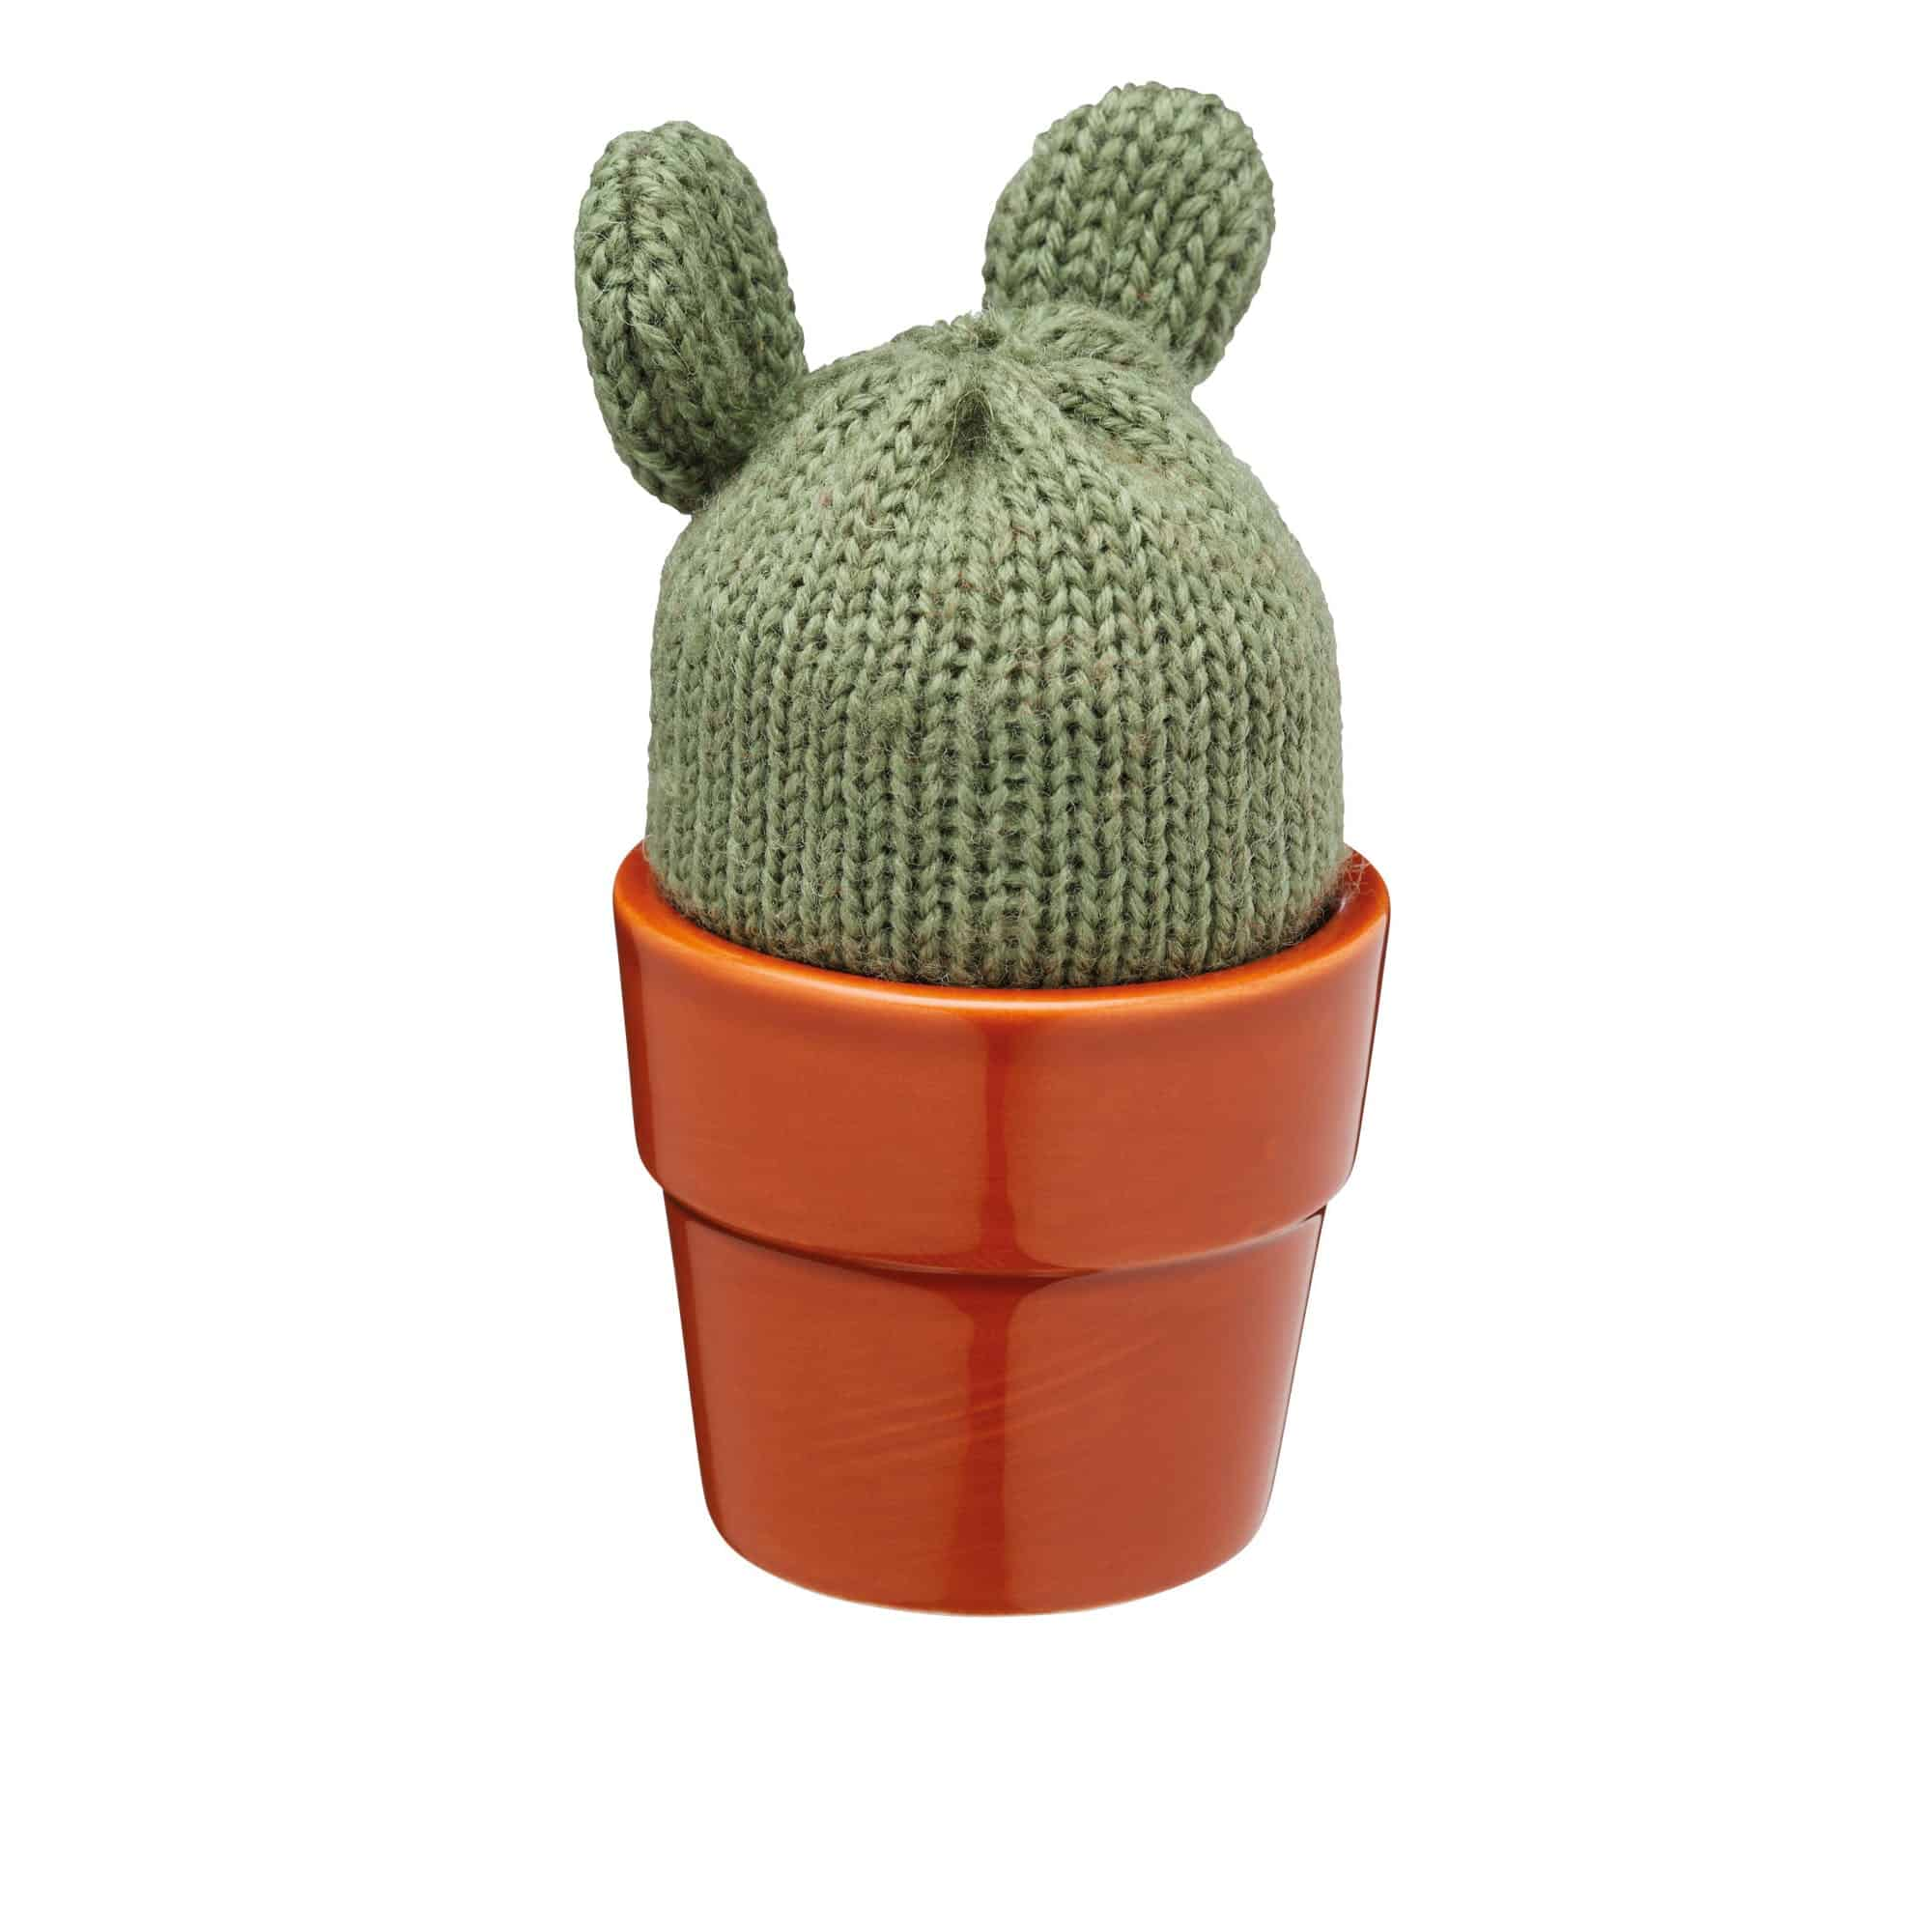 Ceramic Cactus Novelty Egg Cup By Kitchen Craft Jeremy S Home Store